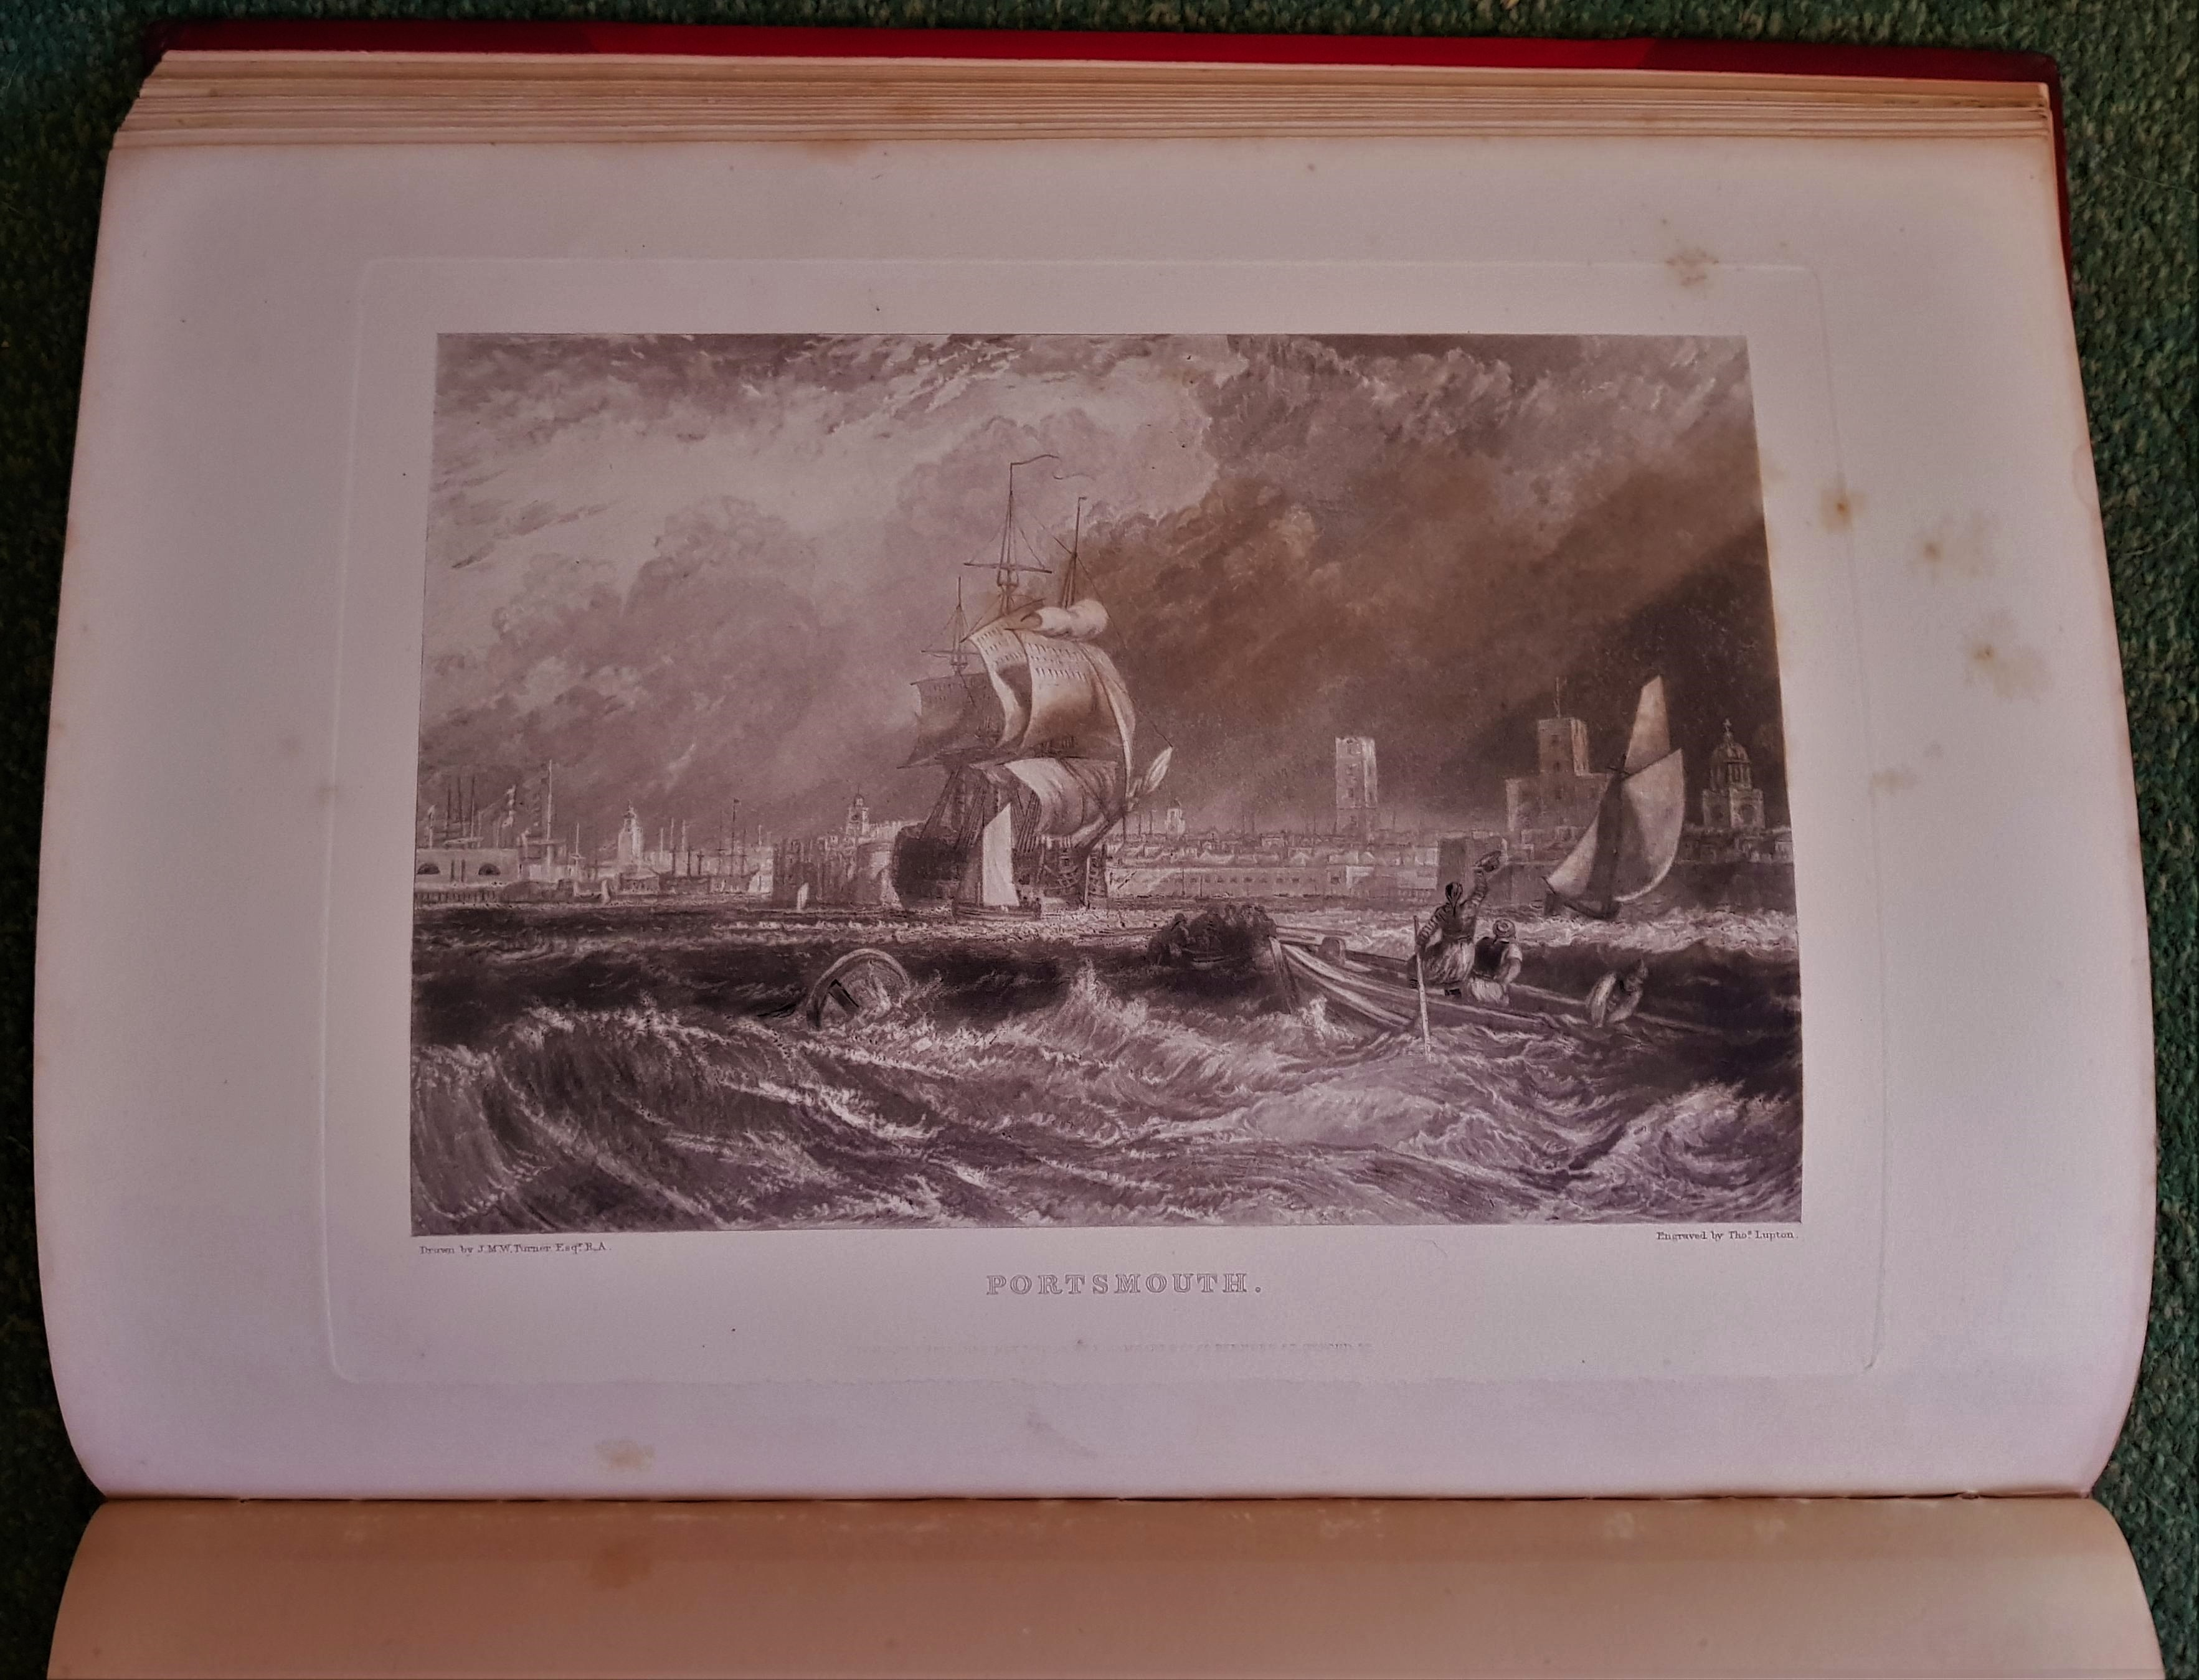 Image for The Harbours of England. Engraved By Lupton from Original drawings made expressly for the work by J. M. W. Turner R.A. with Illustrative Text By J. Ruskin .